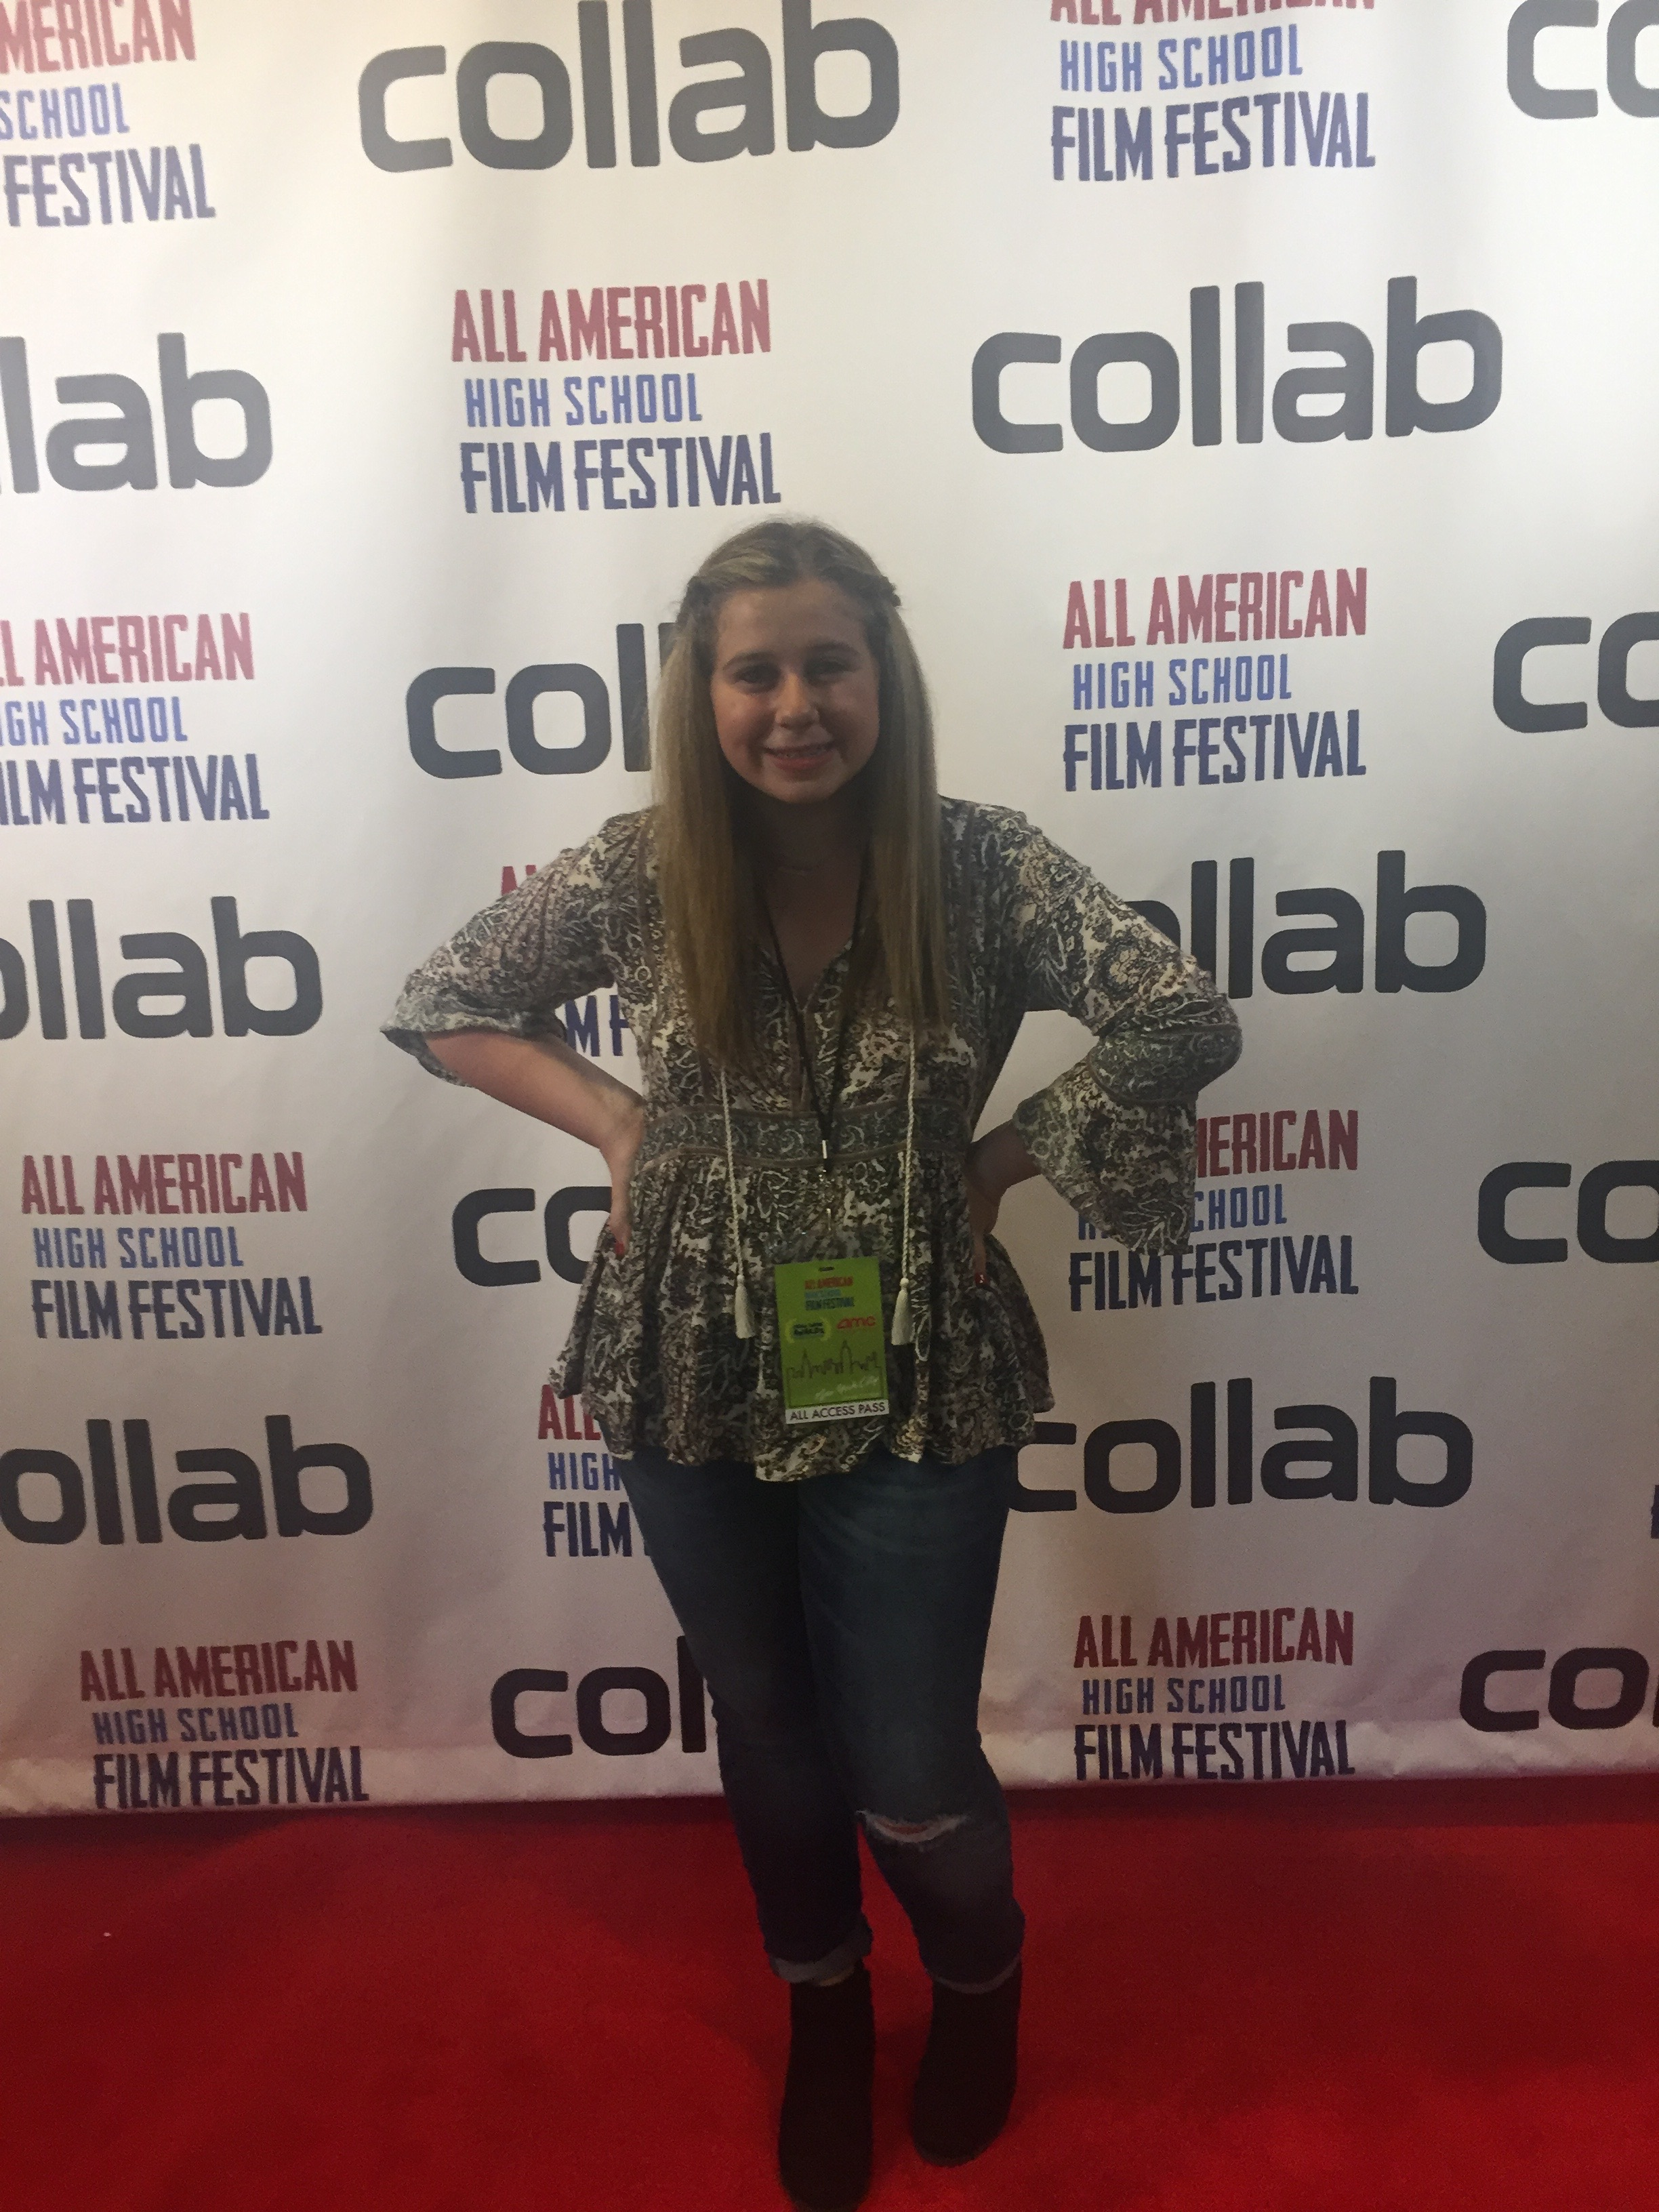 All-American HS Film Festival in NYC